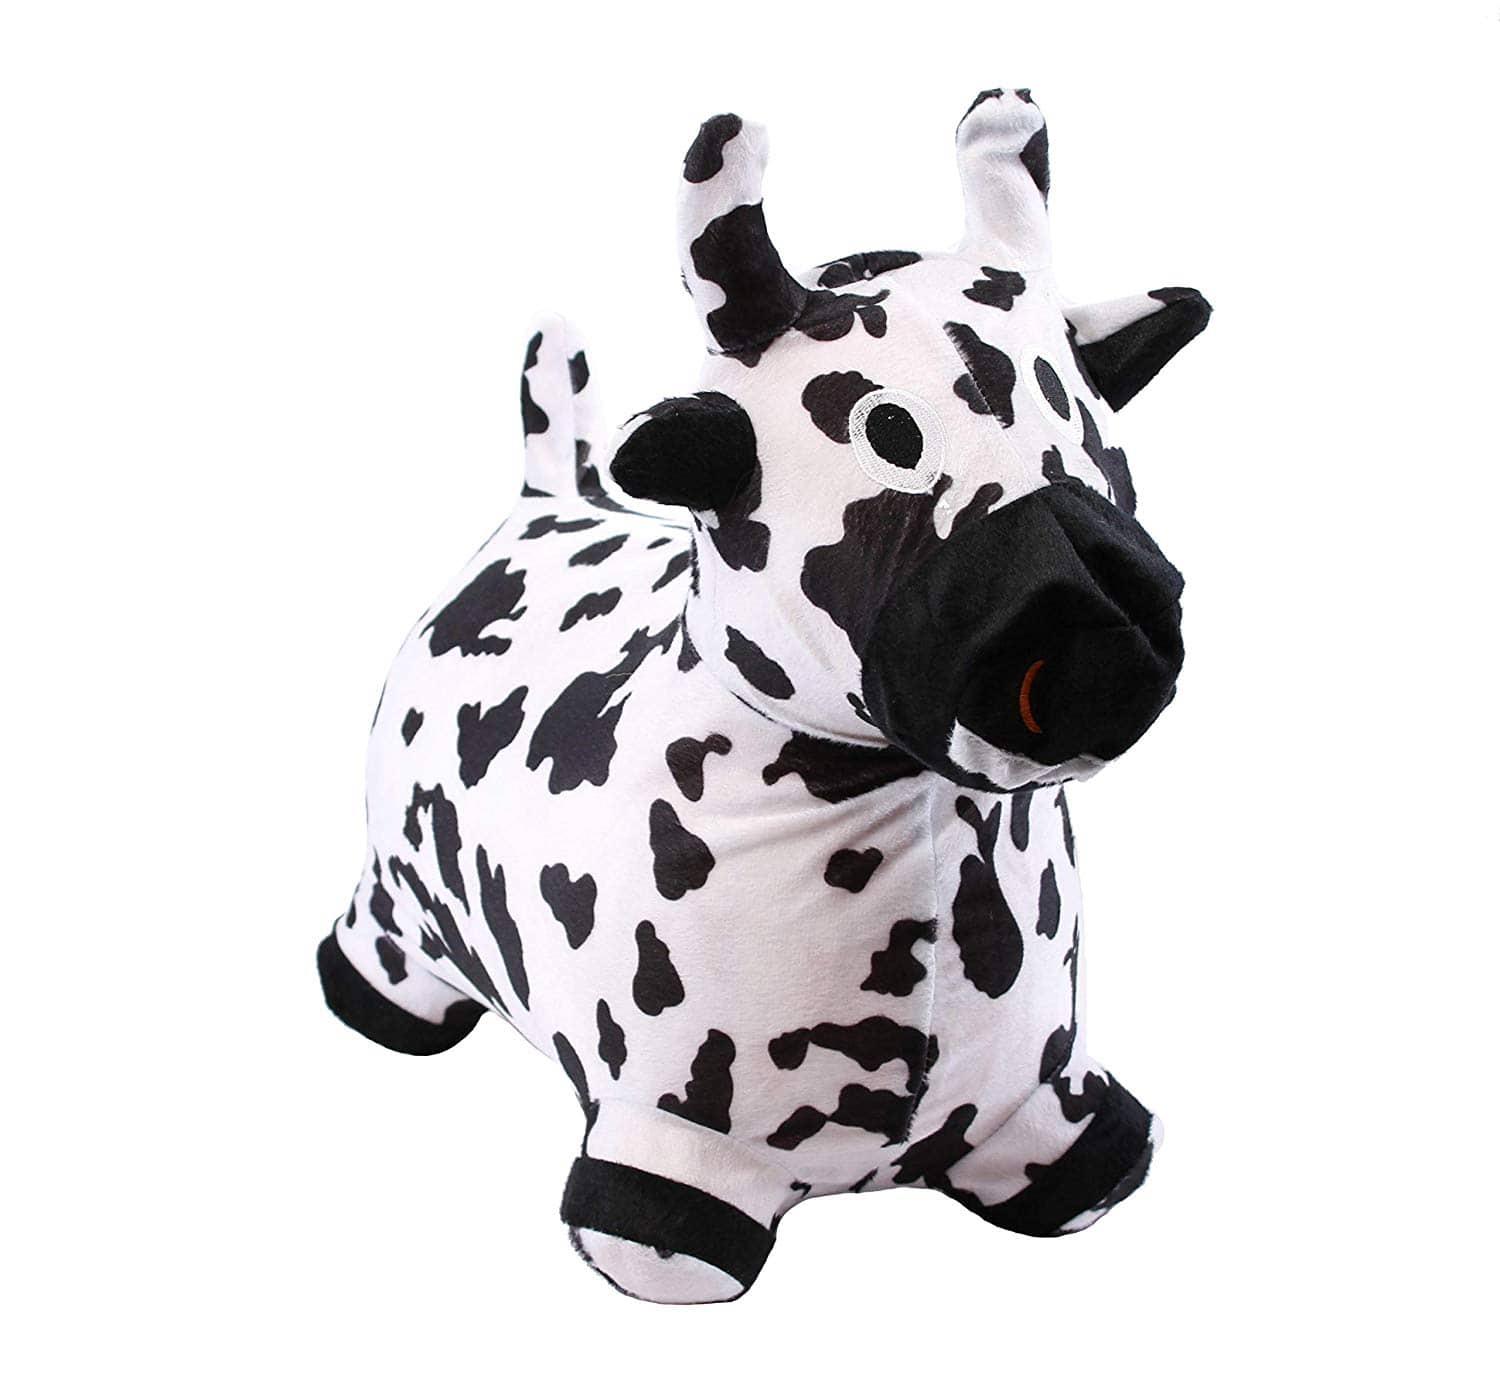 Chromo Bouncy Inflatable Kids Hopping Toys: Cow, Horse, Pony or Dog $14.97 each + Free Shipping - Amazon